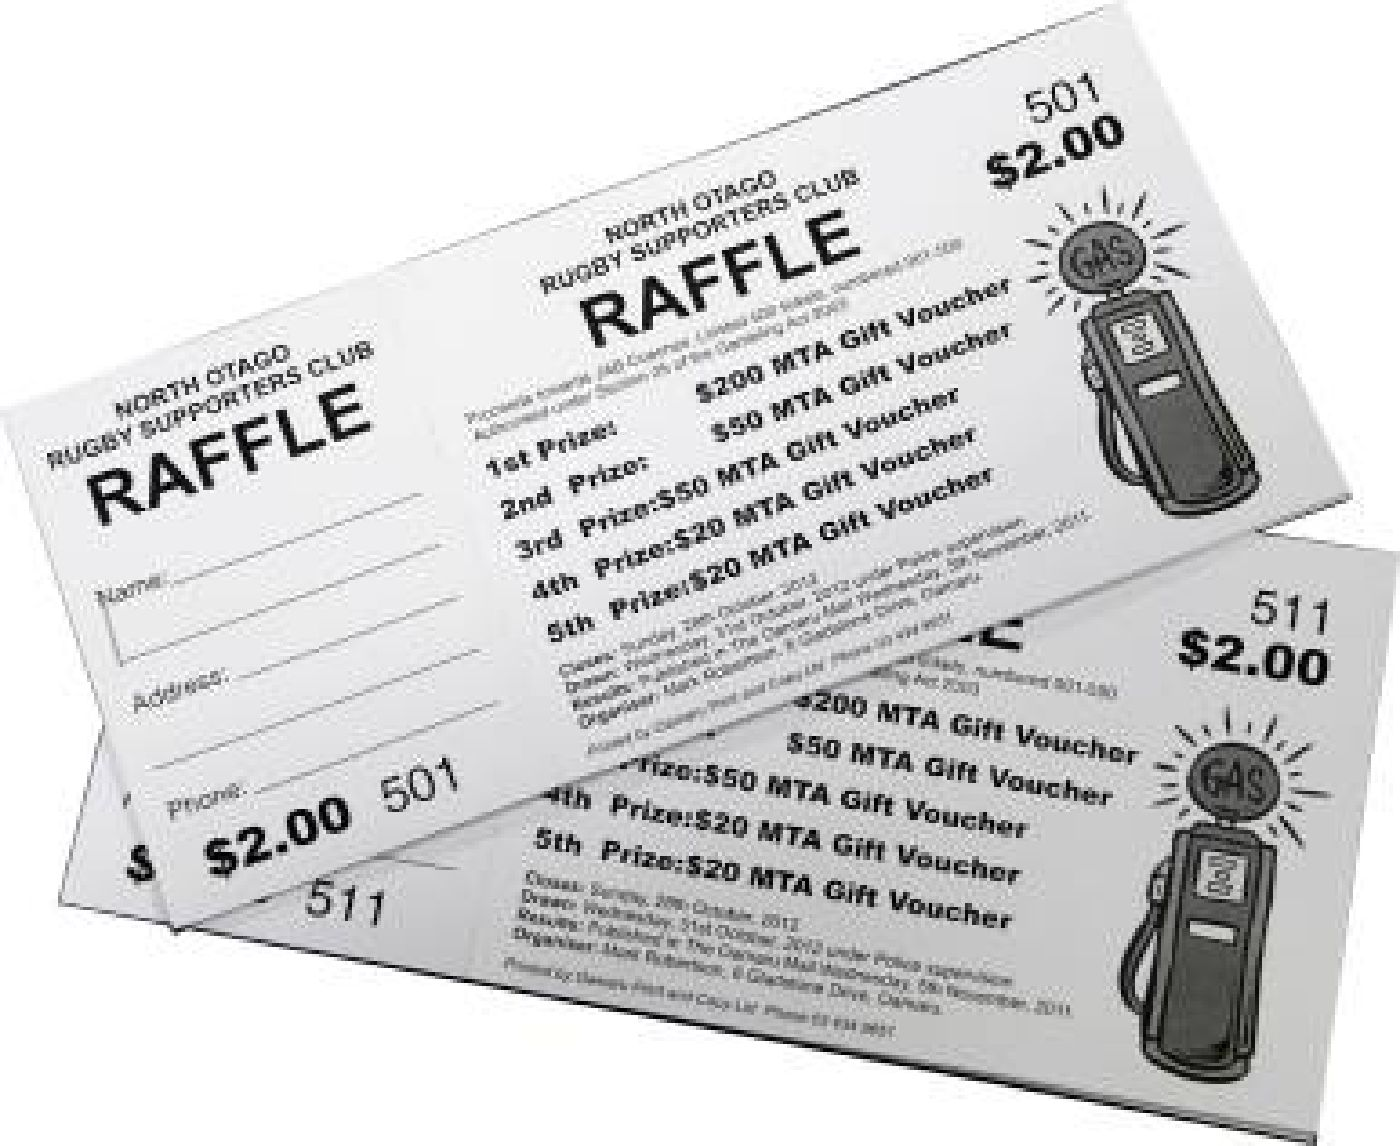 where to get raffle tickets printed